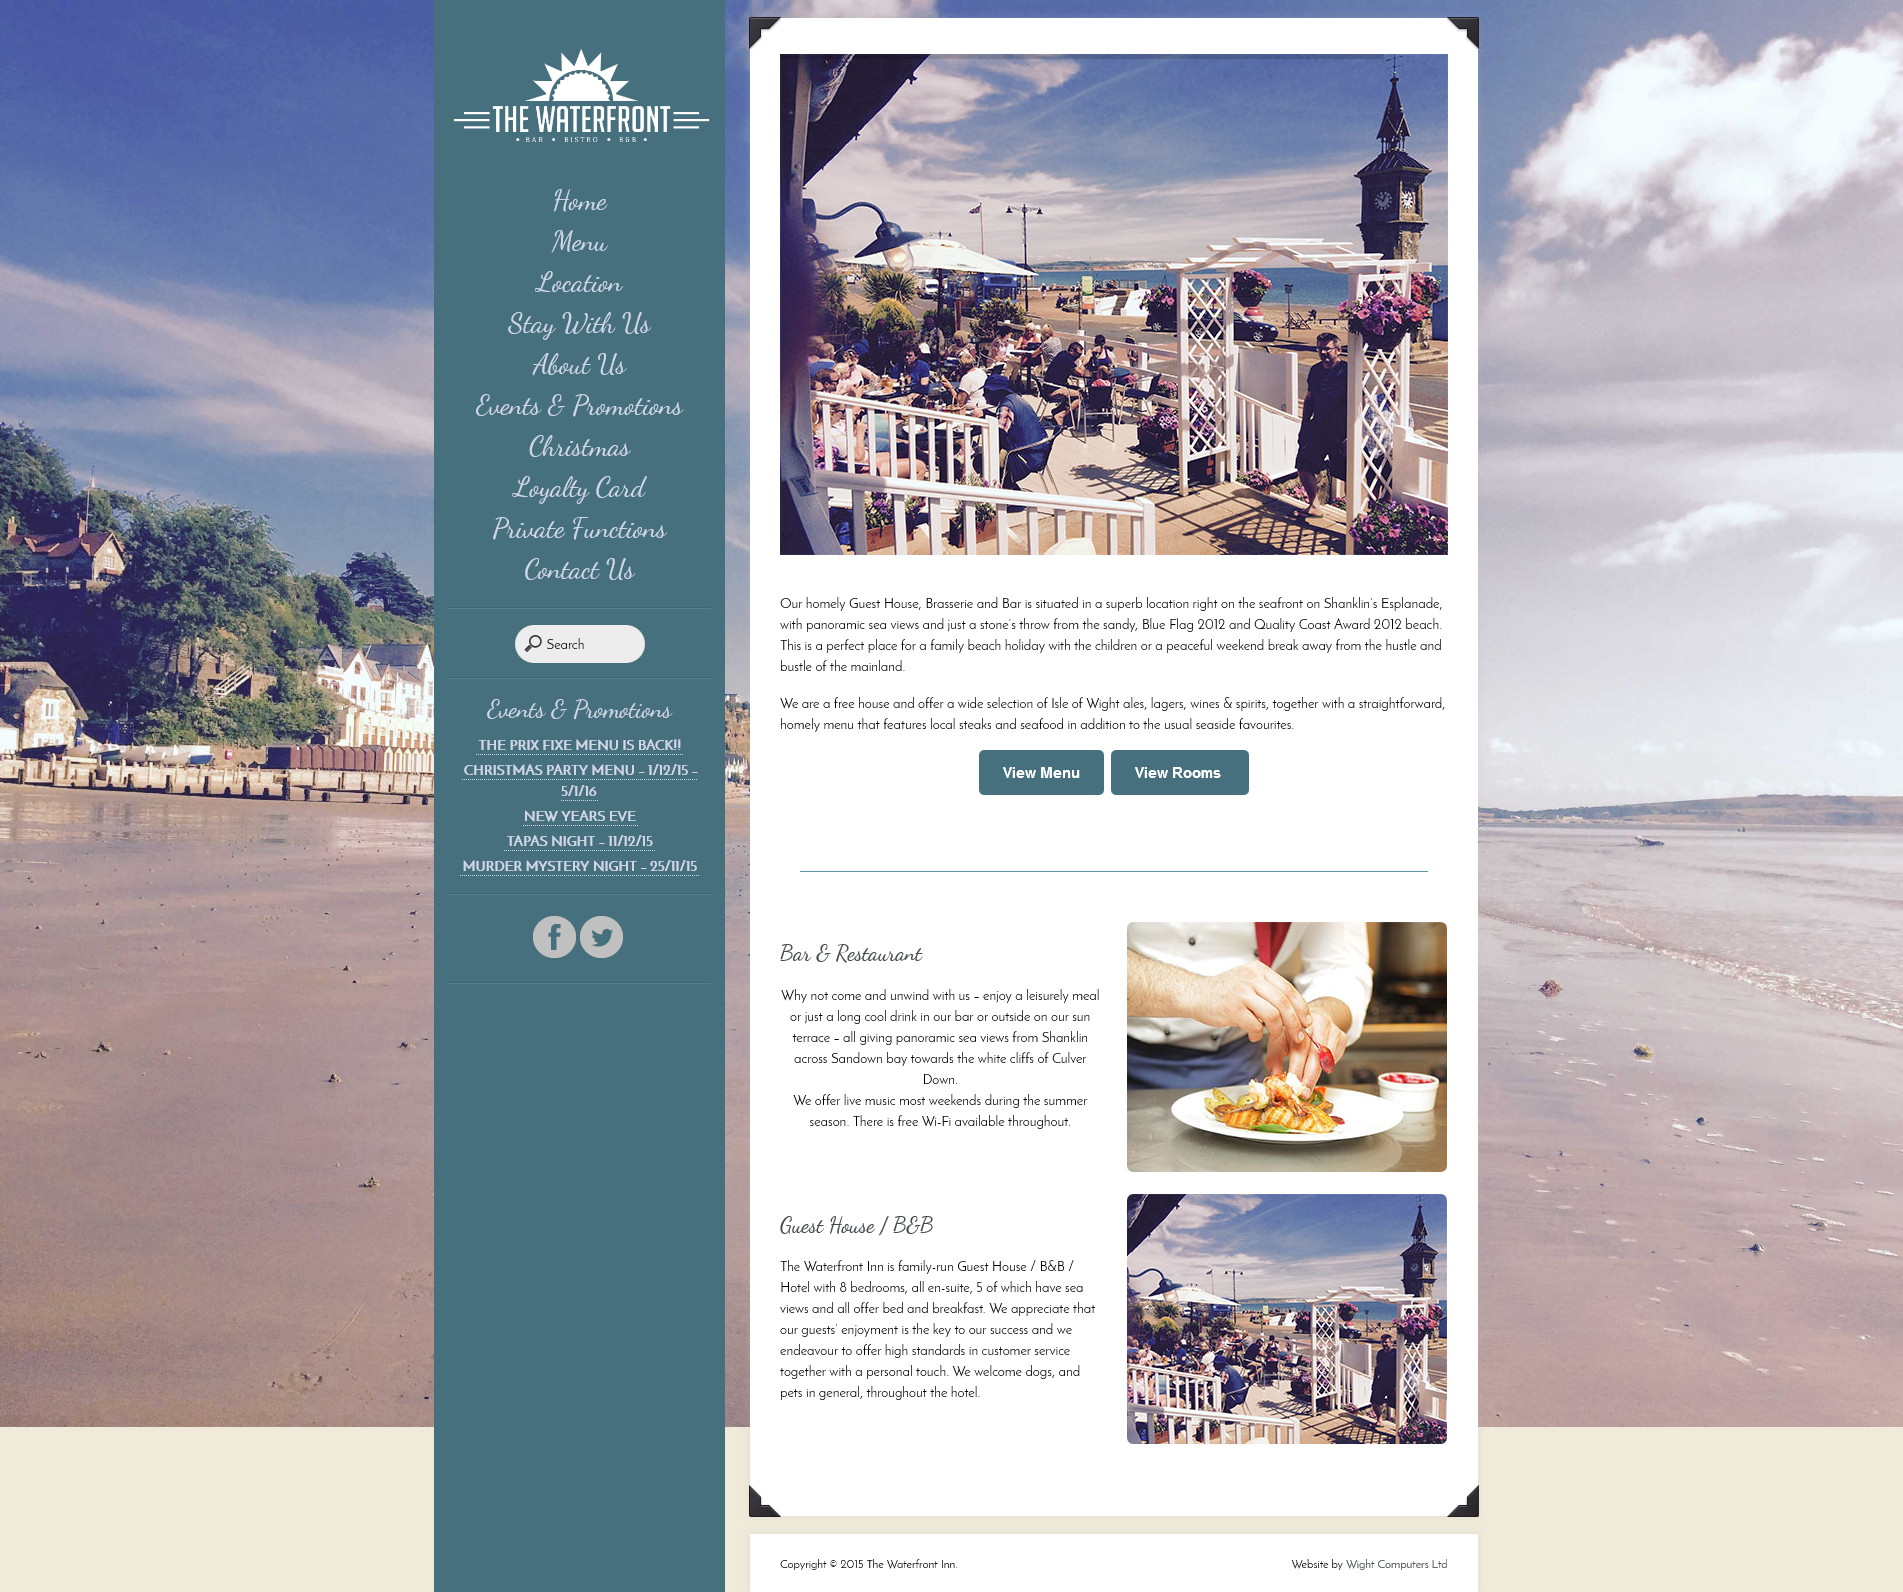 The Waterfront Inn – Hotel, Brasserie & Bar on Shanklin Beach 2015-11-27 11-10-00